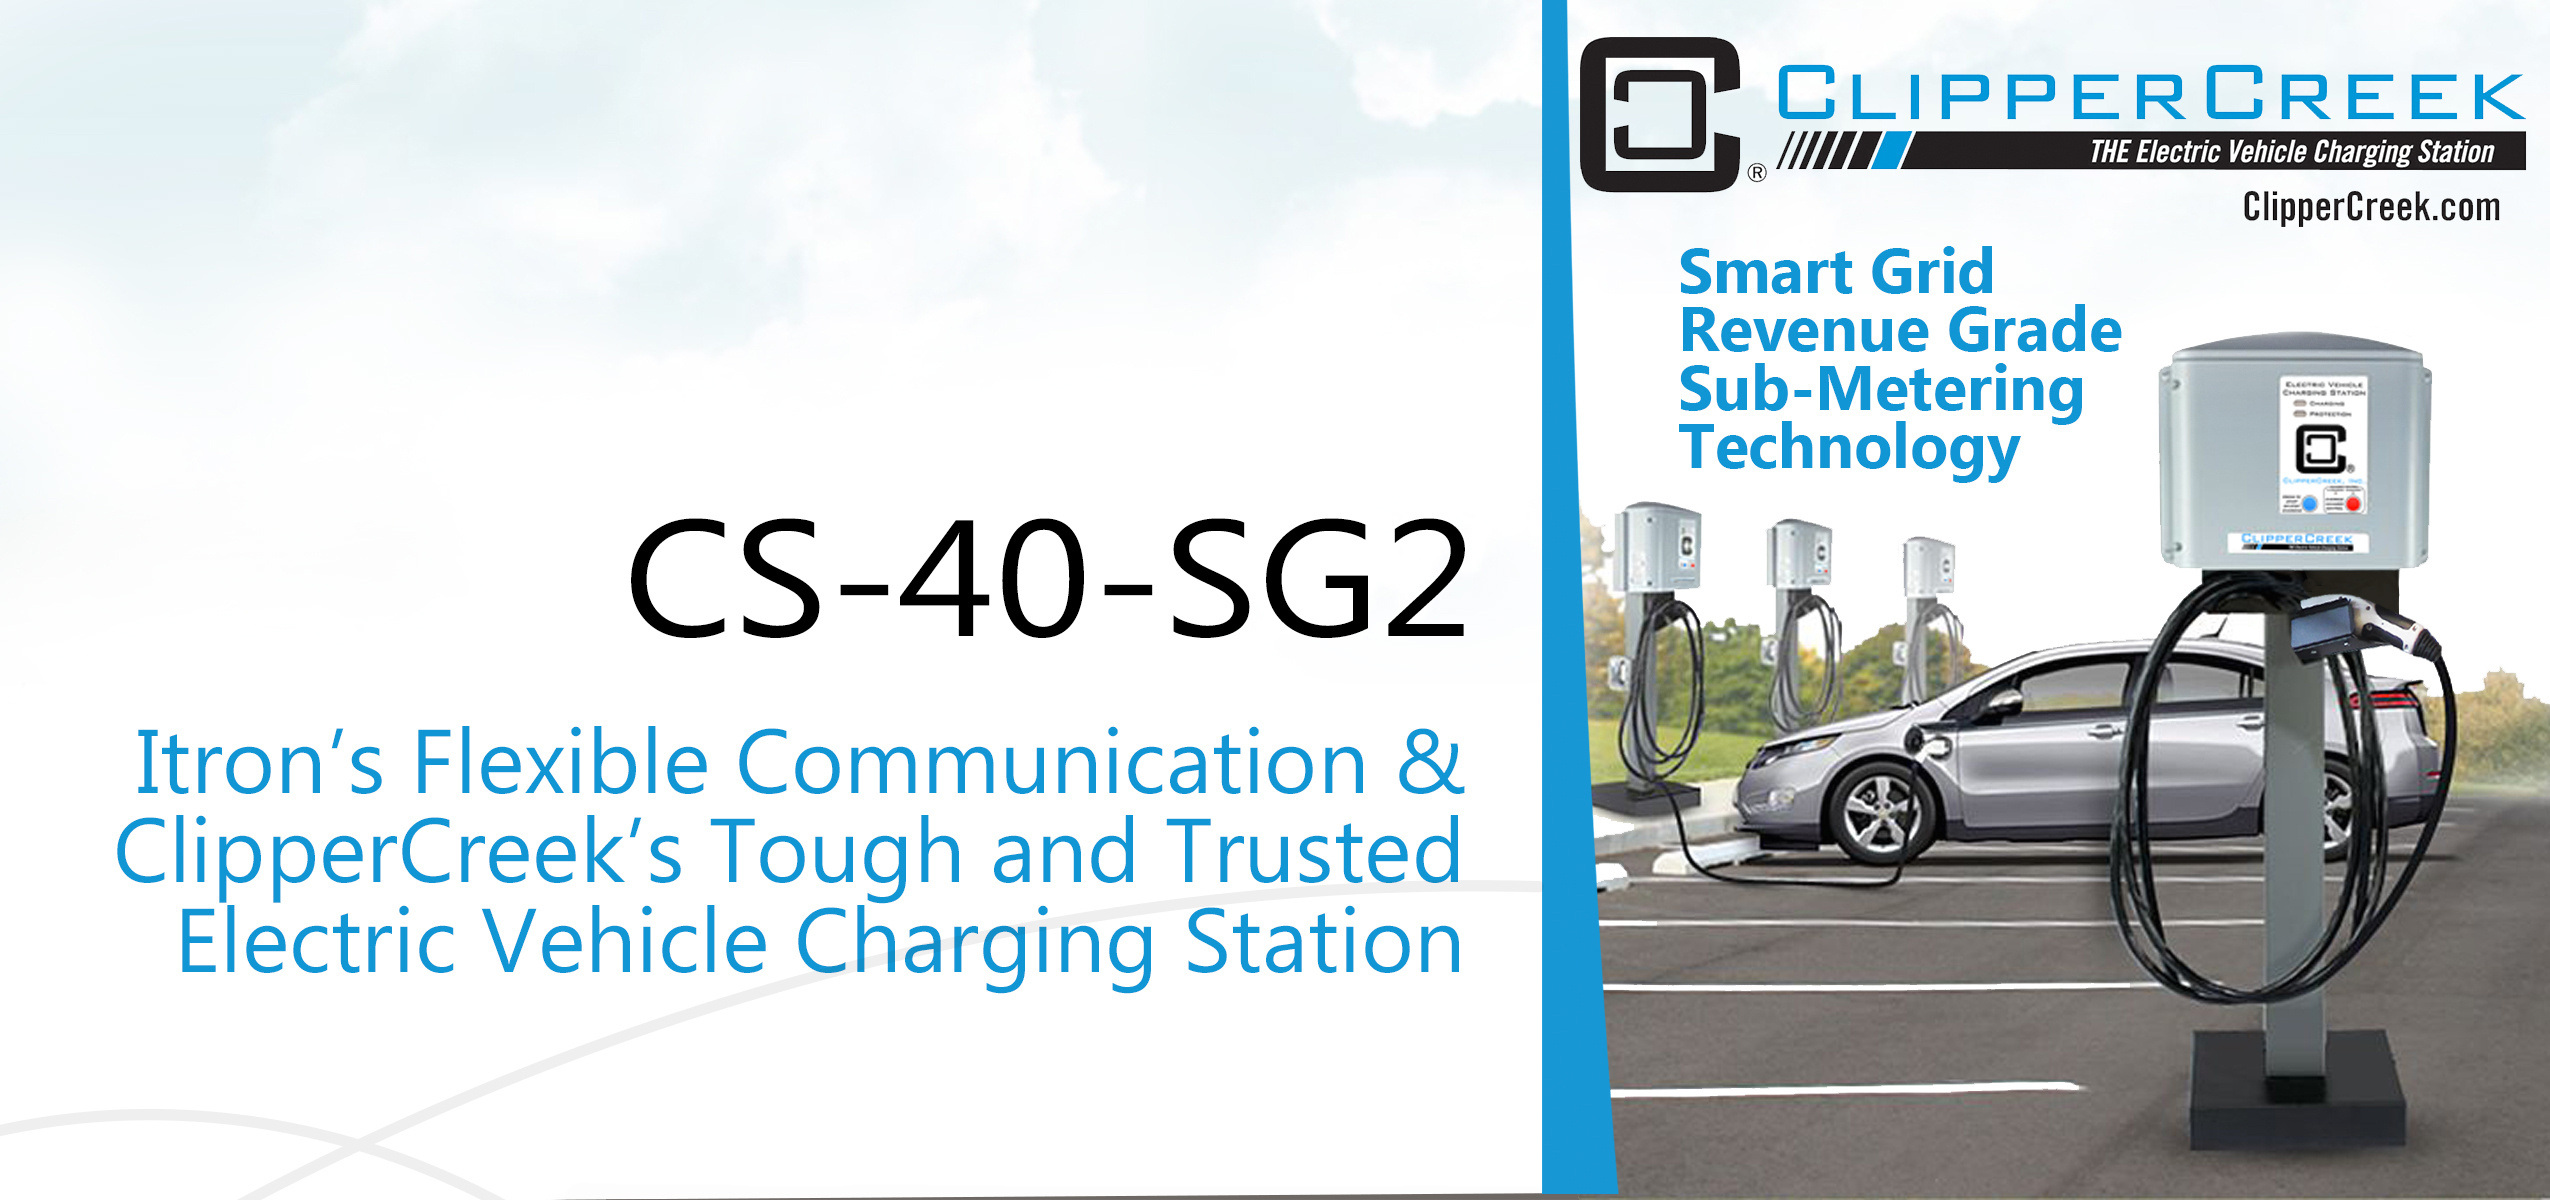 In their joint efforts, Itron and ClipperCreek, have developed an ETL listed, smart grid, revenue grade, sub-metering EV charging station. The CS-40-SG2 is a game changer in the charging station sub-metering industry. (Photo: Business Wire)